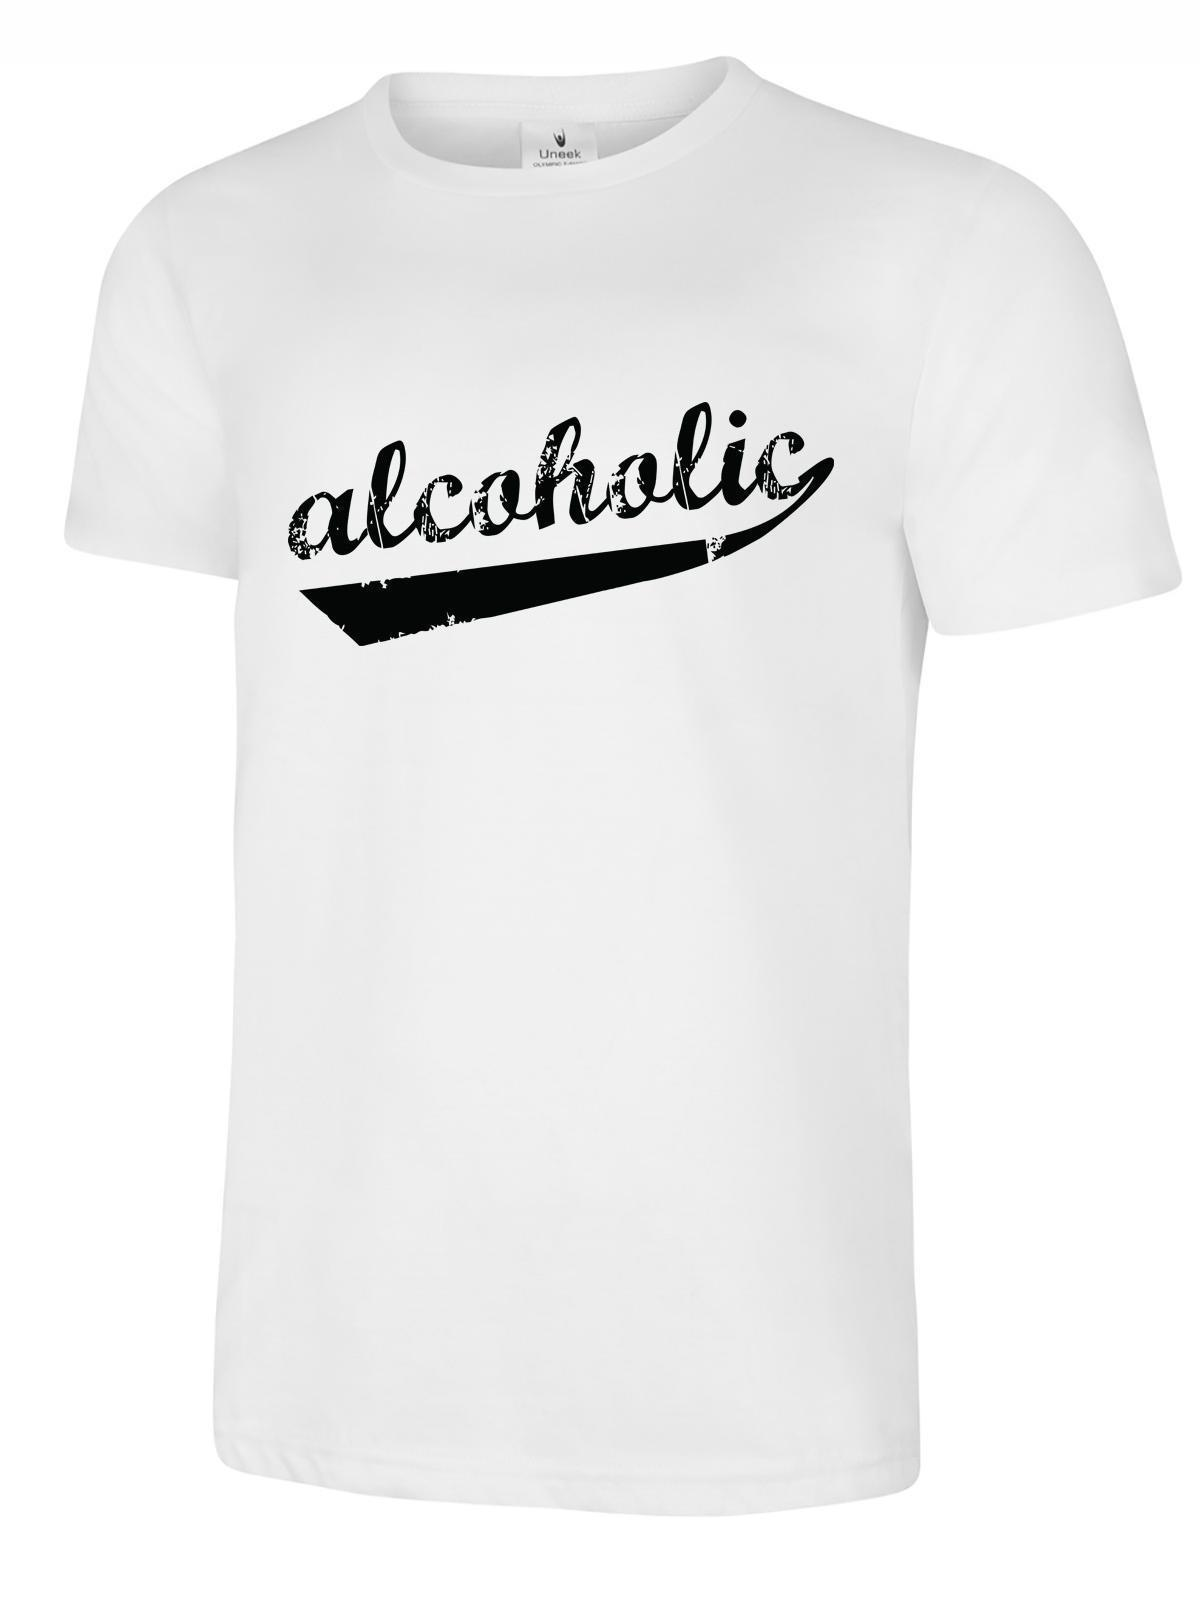 Alcoholic T-Shirt Mens Funny Beer Drinking Top Ale Pub Tee ALCOHOL Printed Round Men T shirt Cheap Price top tee image